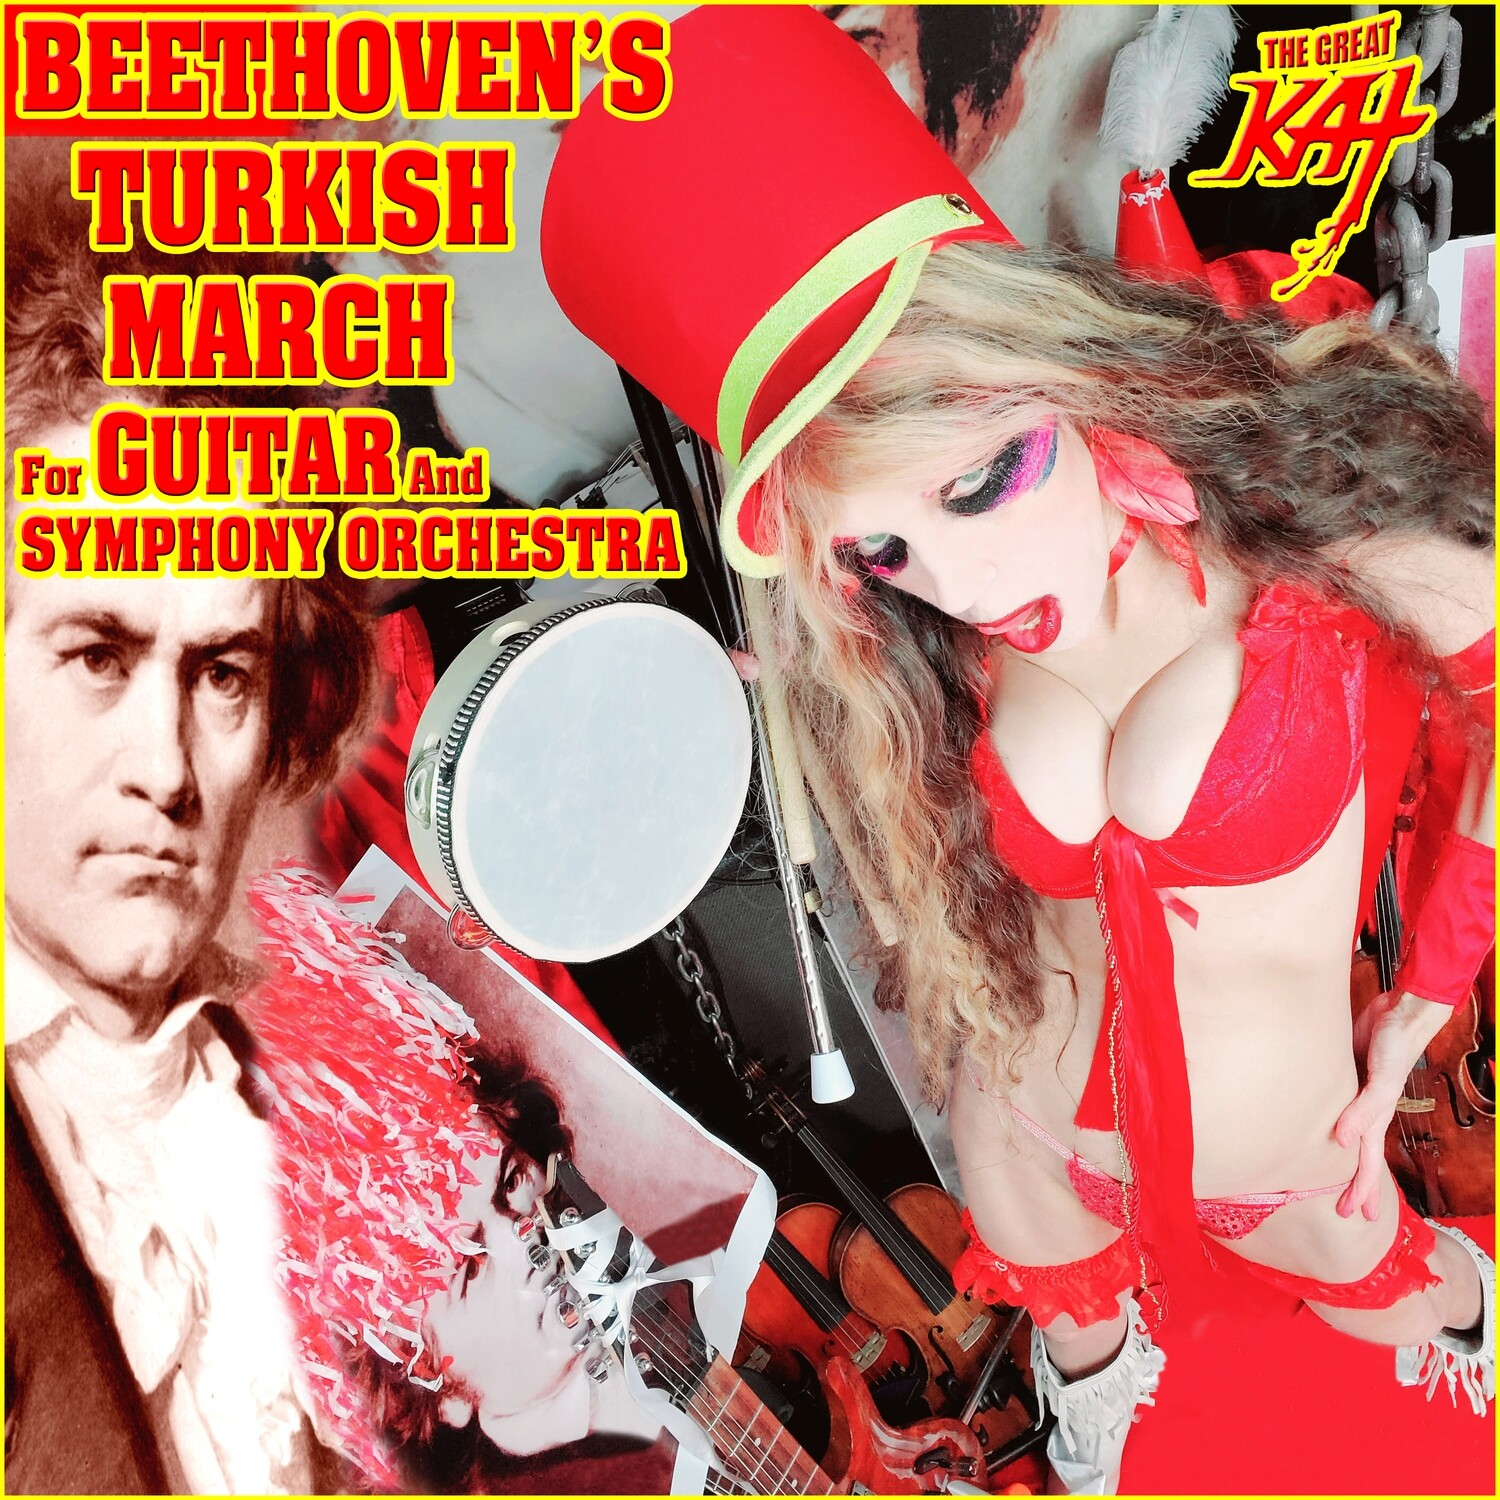 BEETHOVEN'S TURKISH MARCH for GUITAR and SYMPHONY ORCHESTRA! Personalized Autographed HOT GREAT KAT 8x10 Glossy Color Photo​